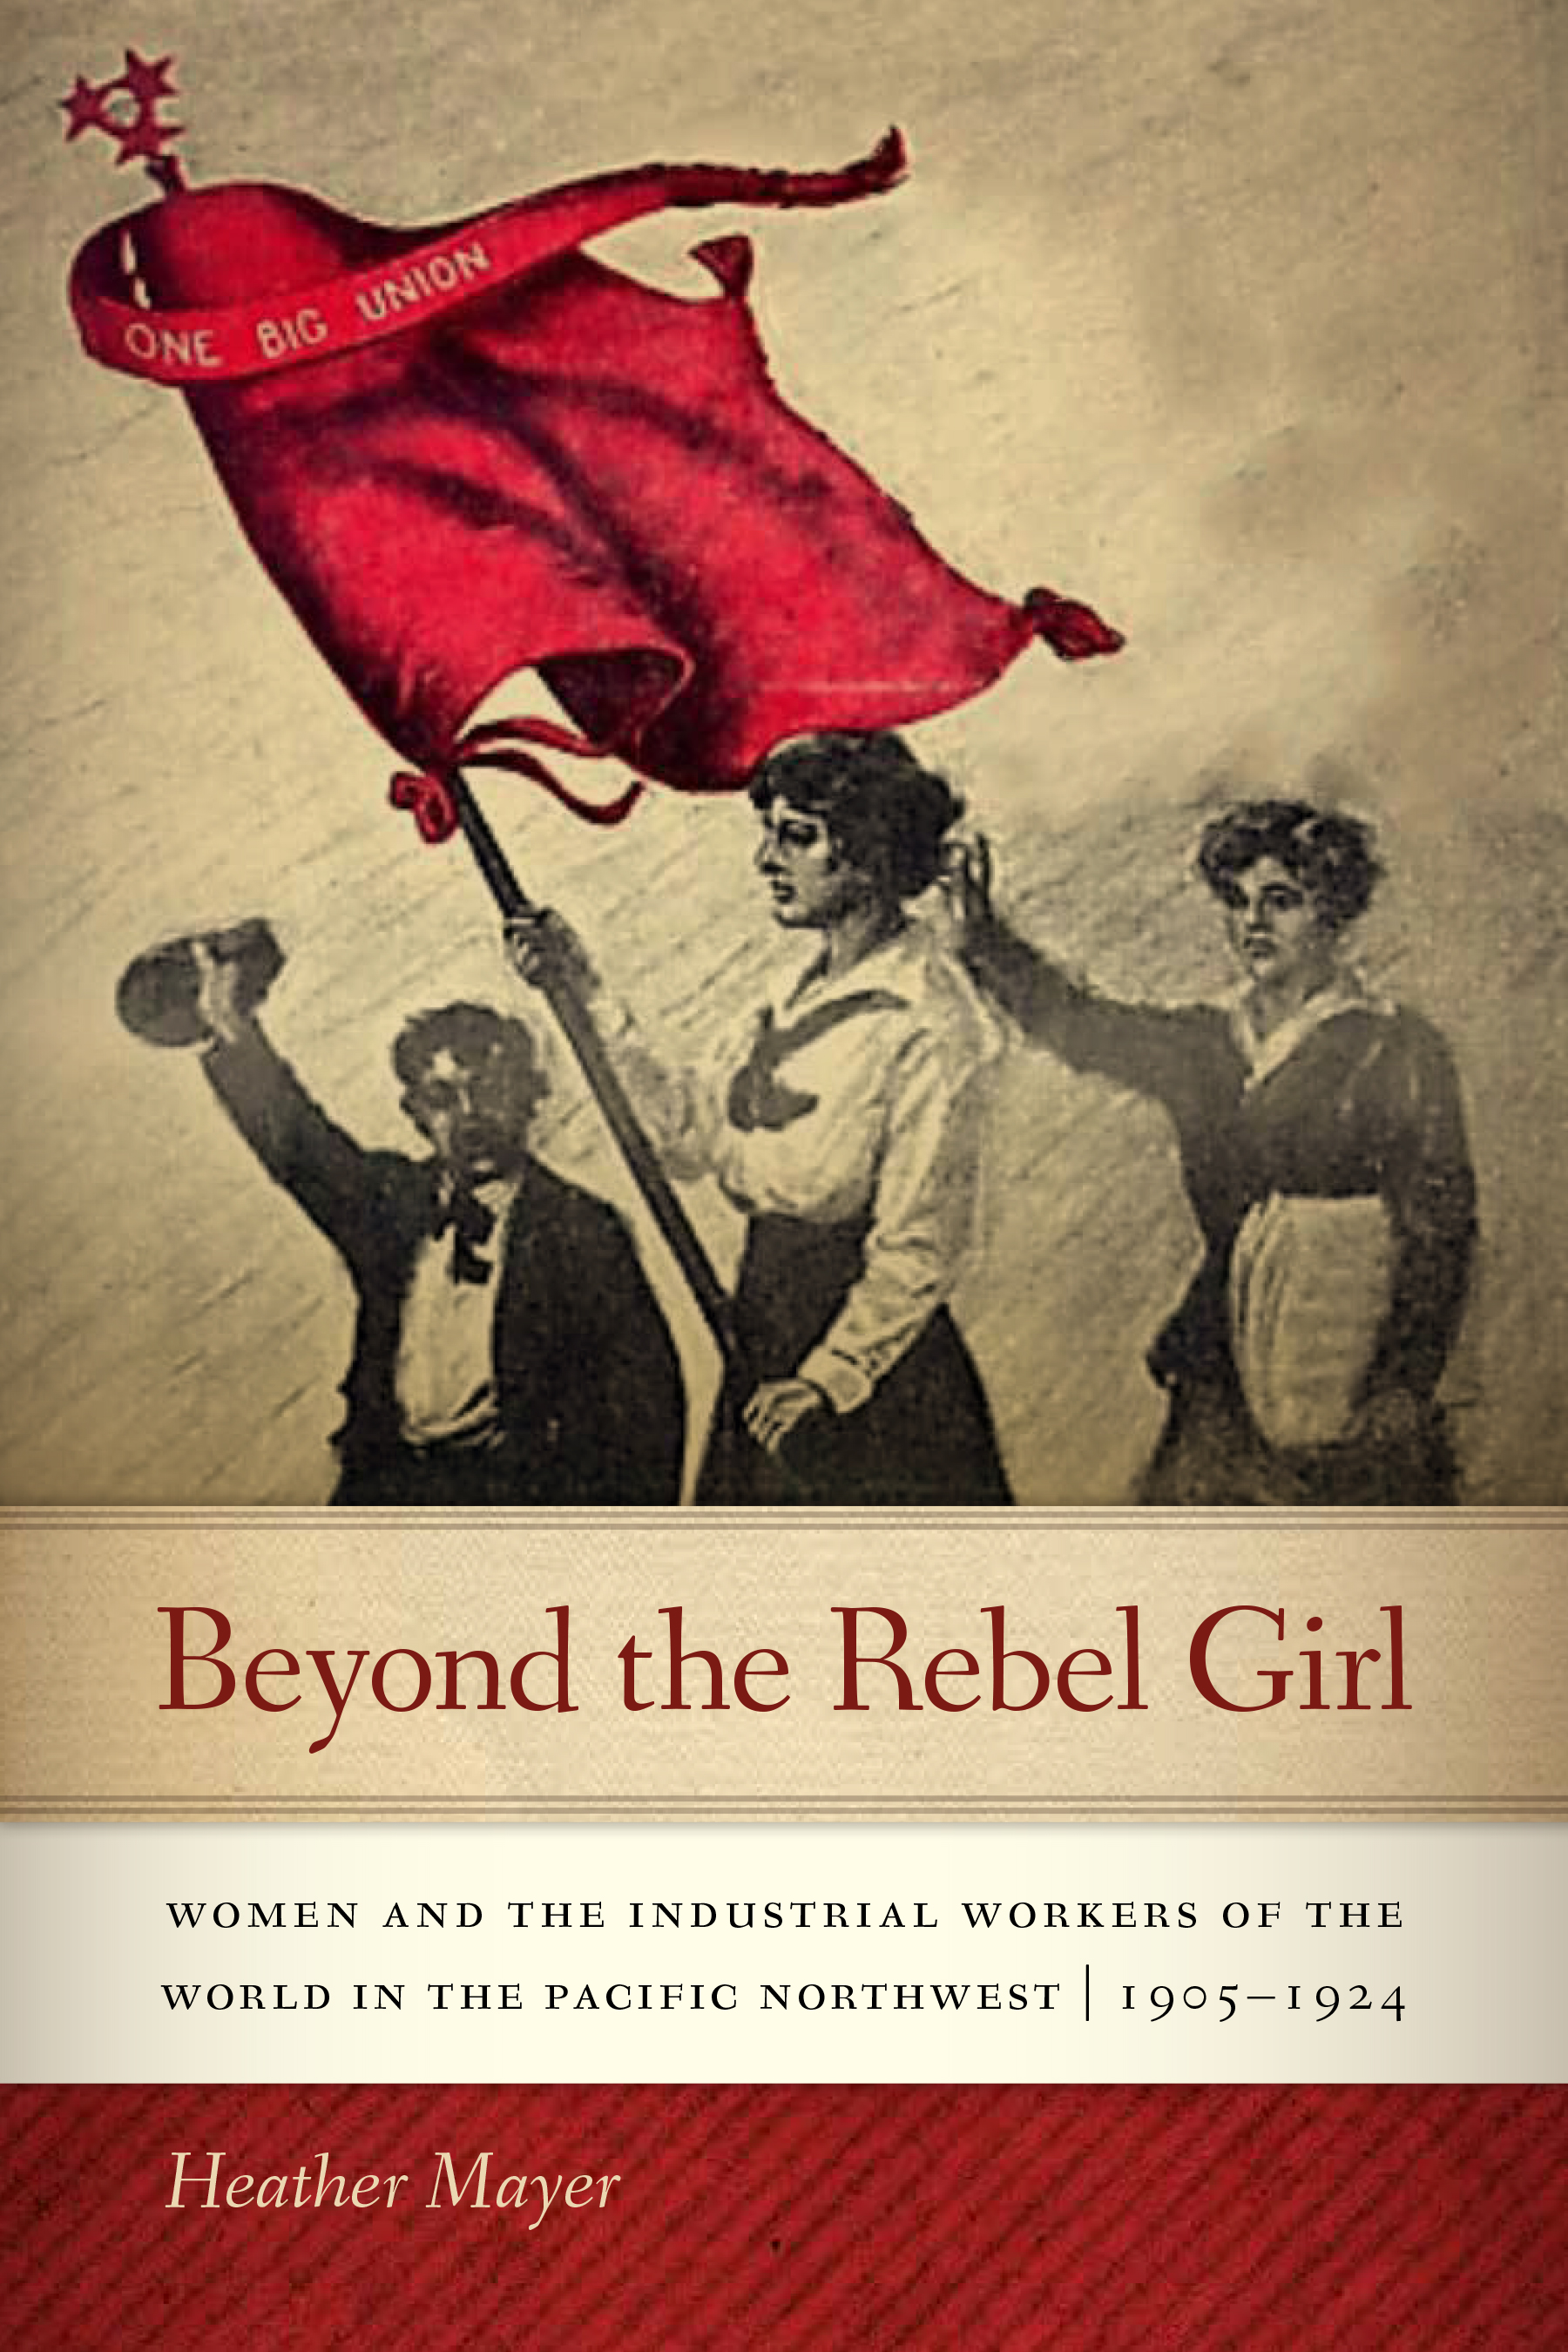 Beyond the Rebel Girl - More than a century after their founding in 1905, the Industrial Workers of the World—or Wobblies as they are commonly known—remain a popular subject for study and discussion among students of labor history and social justice. They are often portrayed as lovable underdogs, with their songs and cartoons, generally irreverent attitude, and stalwart courage in the face of systemic persecution from vigilantes, law enforcement, and government officials.In Beyond the Rebel Girl, historian Heather Mayer questions the well-worn vision of Wobblies as young, single, male, itinerant workers. While such workers formed a large portion of the membership, they weren't the whole picture. In small towns across the Northwest, and in the larger cities of Seattle, Portland, and Spokane, women played an integral role in Wobbly life. Single women, but also families—husband and wife Wobbly teams—played important roles in some of the biggest fights for justice. IWW halls in these Northwest cities often functioned as community centers, with family-friendly events and entertainment.Women were drawn to the IWW for its radical vision, inclusionary policies, birth control advocacy, and emphasis on freedom of choice in marriage. The IWW also offered women an avenue for activism that wasn't focused primarily on the fight for suffrage. Beyond the Rebel Girl deepens our understanding of how the IWW functioned and how the union supported women in their fight for birth control, sexual emancipation, and better labor conditions, all while facing persecution at the local, state, and federal levels.Buy now from Oregon State University Press, Amazon, Broadway Books, or Powell's.